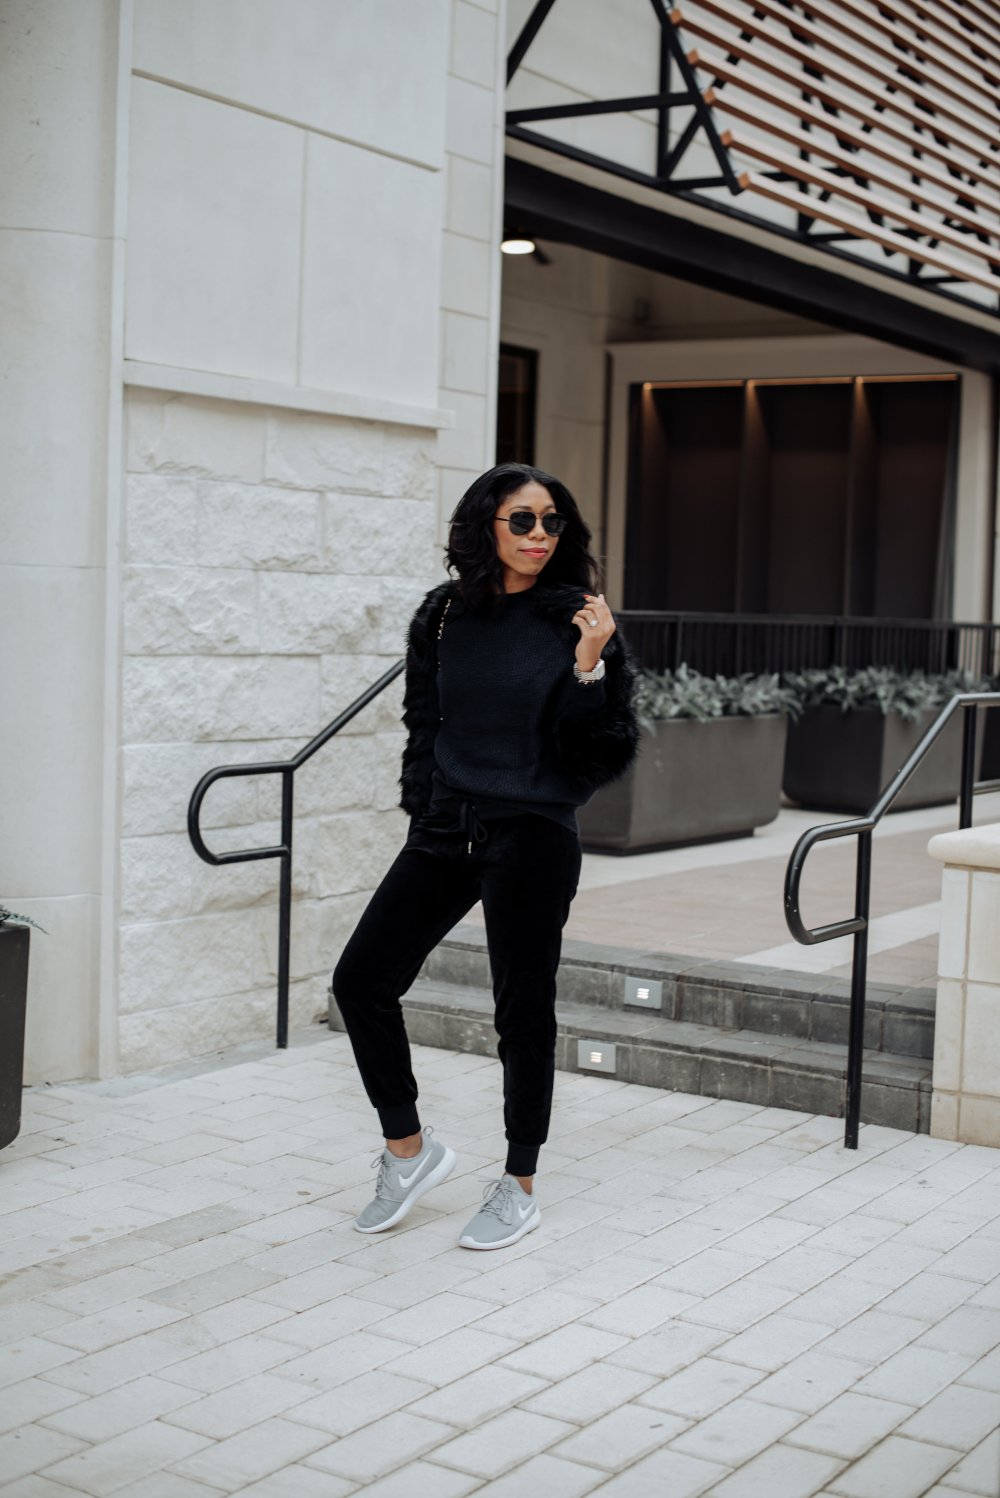 fall style winter style velvet joggers nike tennis shoes faux fur sweater casual glam style stephanie taylor jackson steph taylor jackson dallas tx blogger